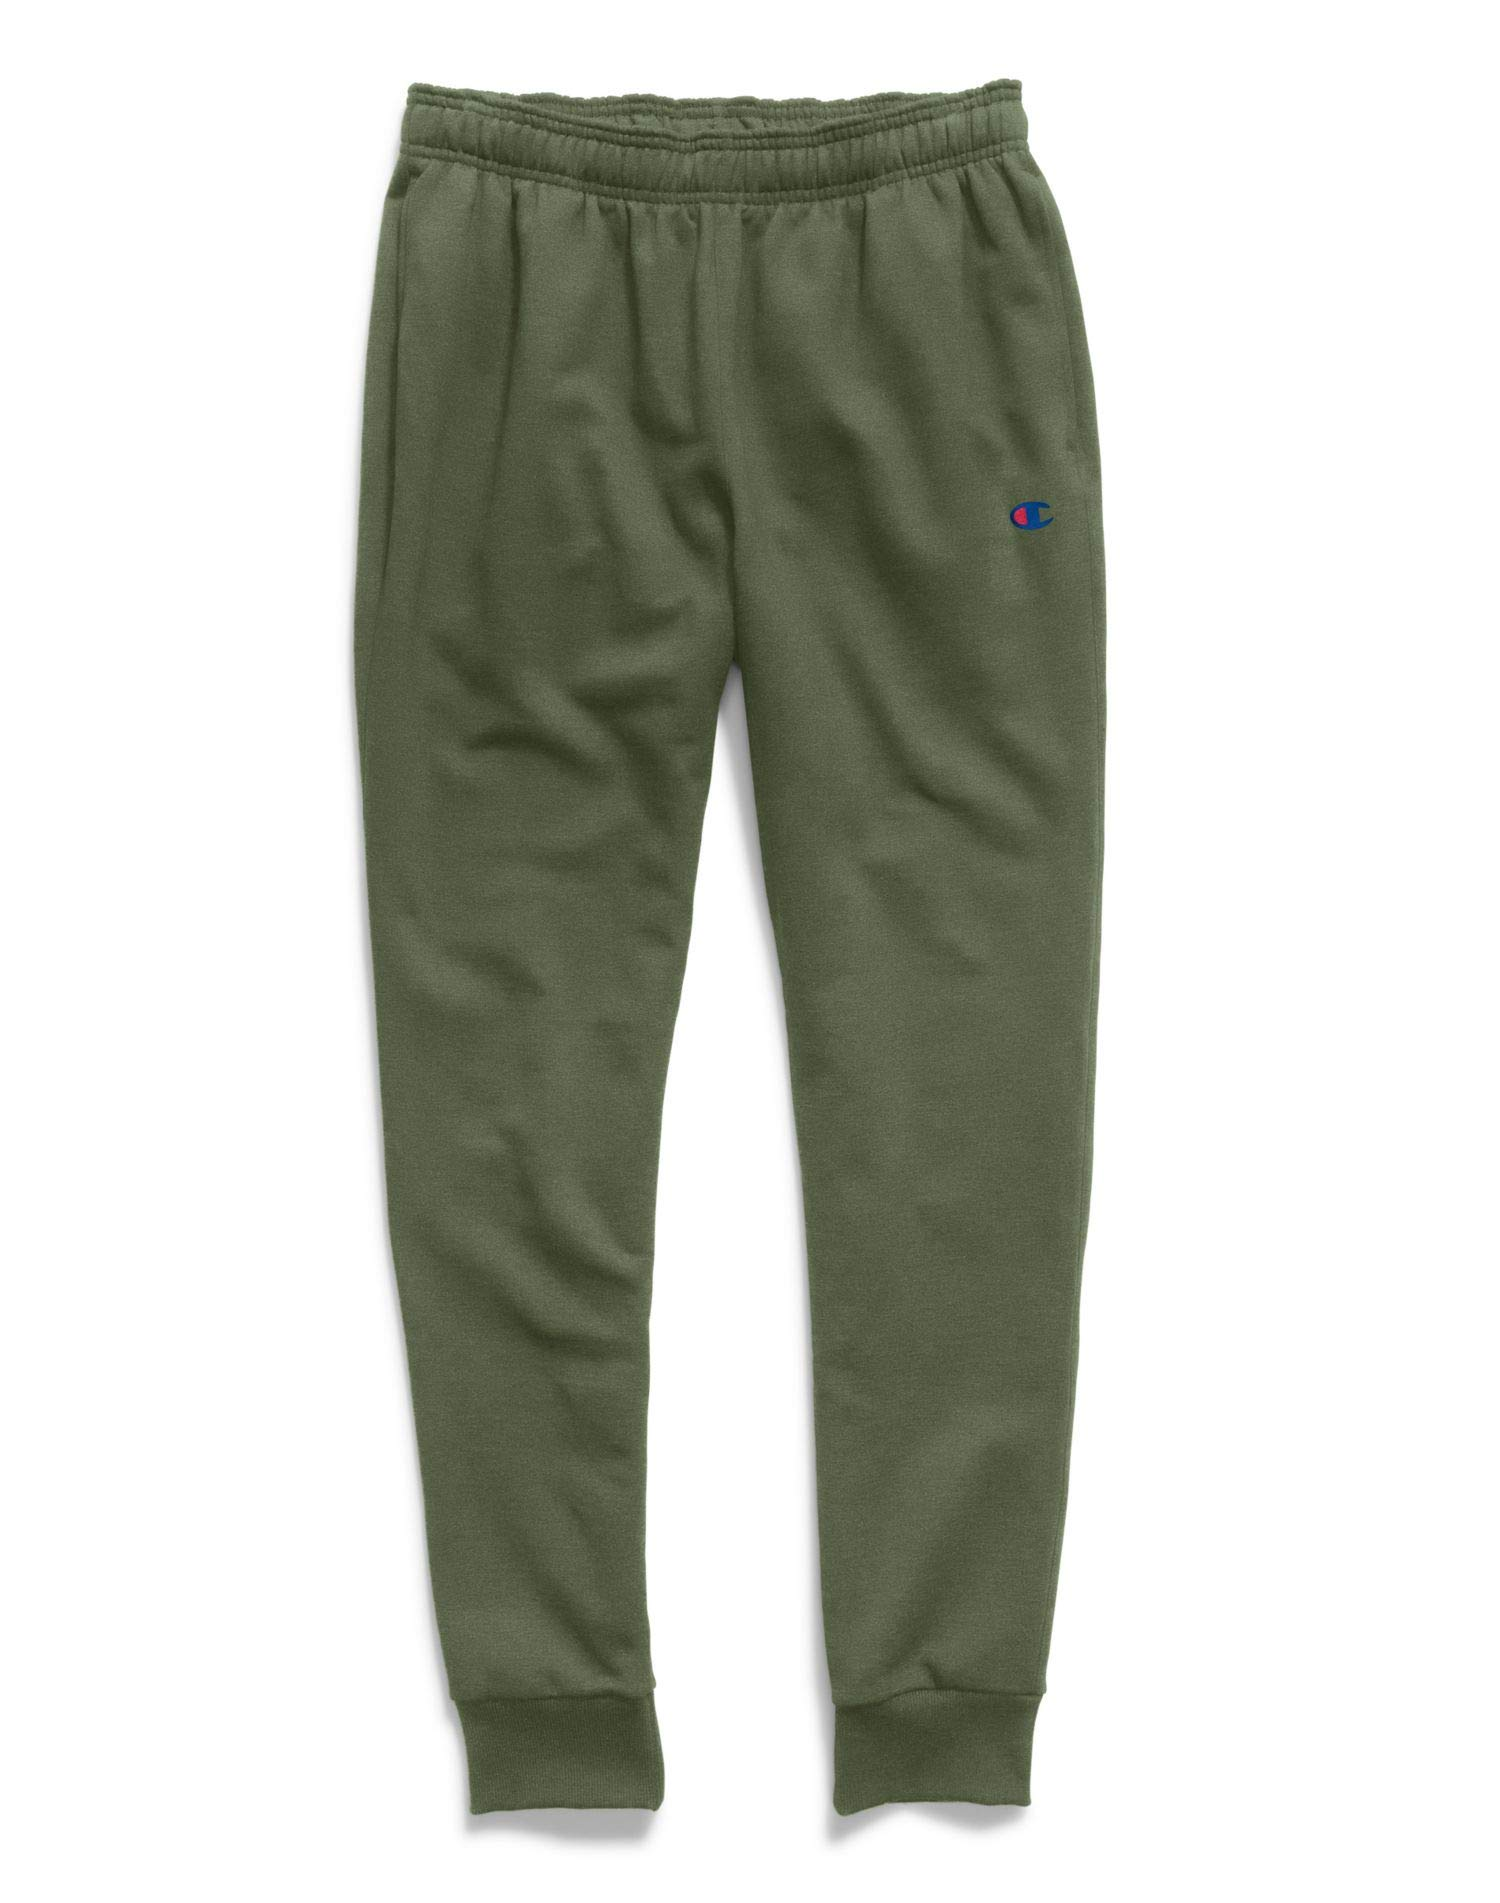 Champion Powerblend® Retro Fleece Jogger Pants (P1022 549314) -Cargo Oliv -XL by Champion